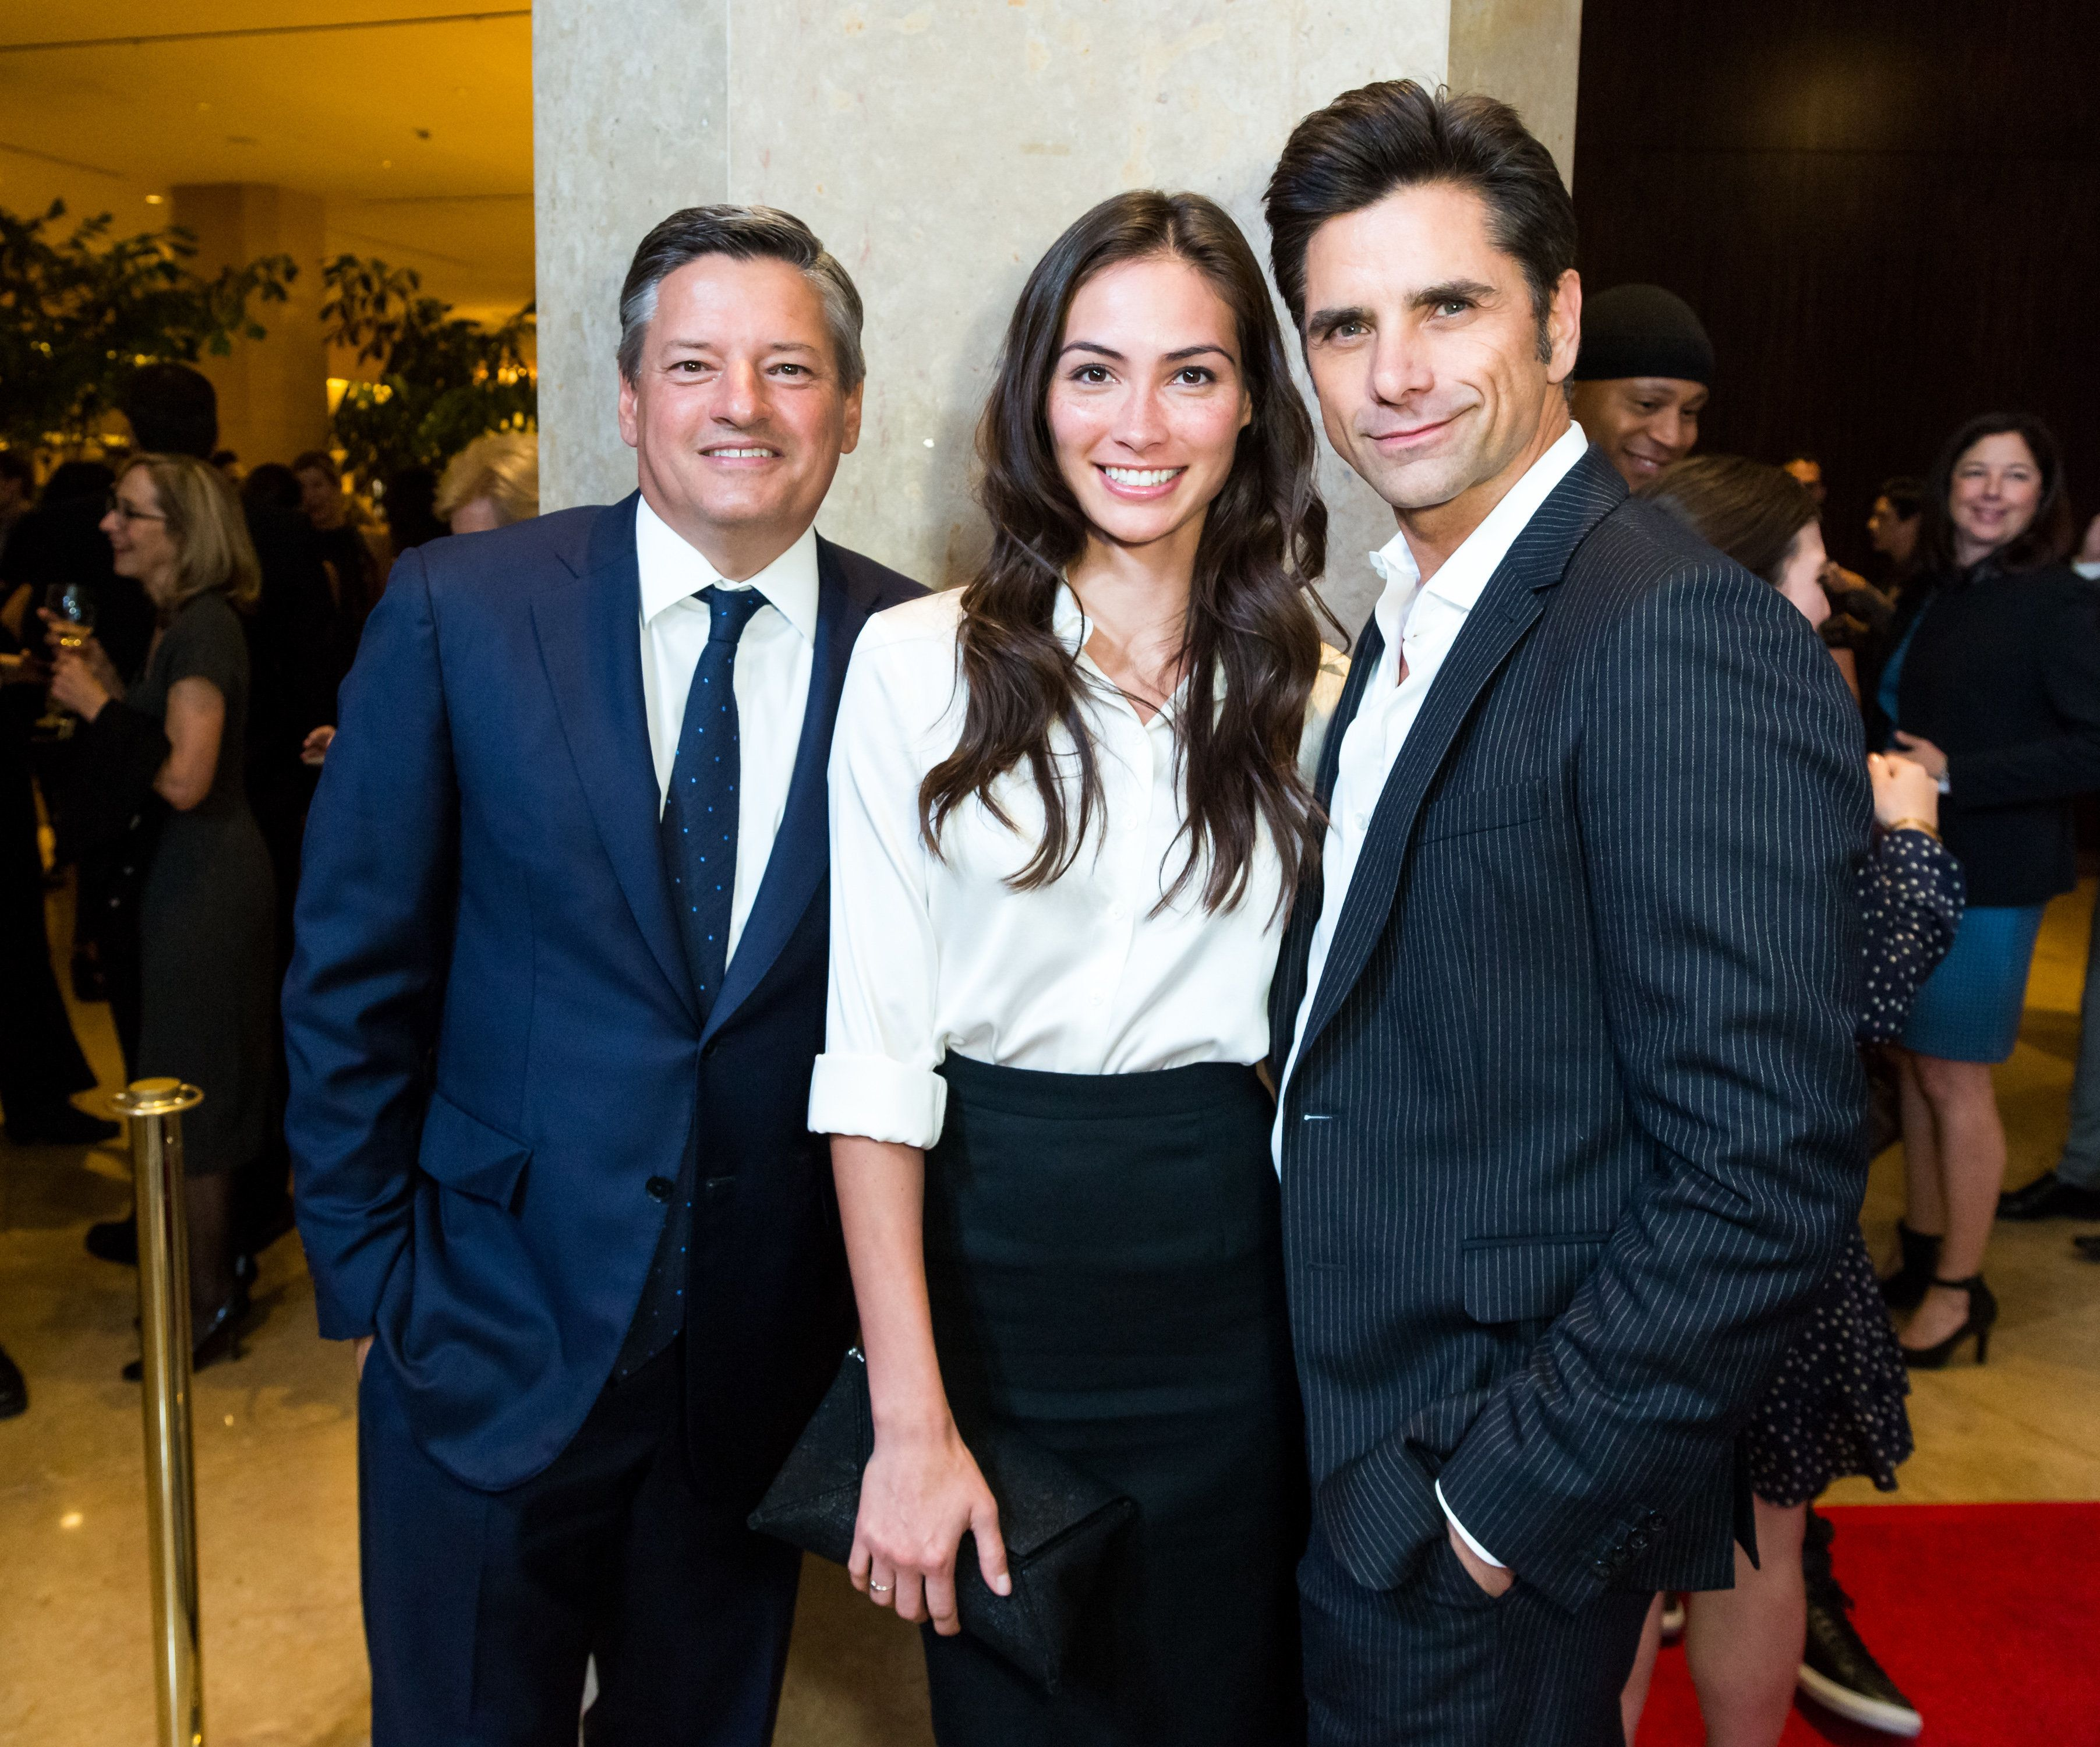 BEVERLY HILLS, CA - NOVEMBER 14: Netflix Chief Content Officer Ted Sarandos, Actress Caitlin McHugh and Actor John Stamos arrive for the Saban Community Clinic's 40th Annual Dinner Gala at The Beverly Hilton Hotel on November 14, 2016 in Beverly Hills, California.  (Photo by Greg Doherty/Getty Images)